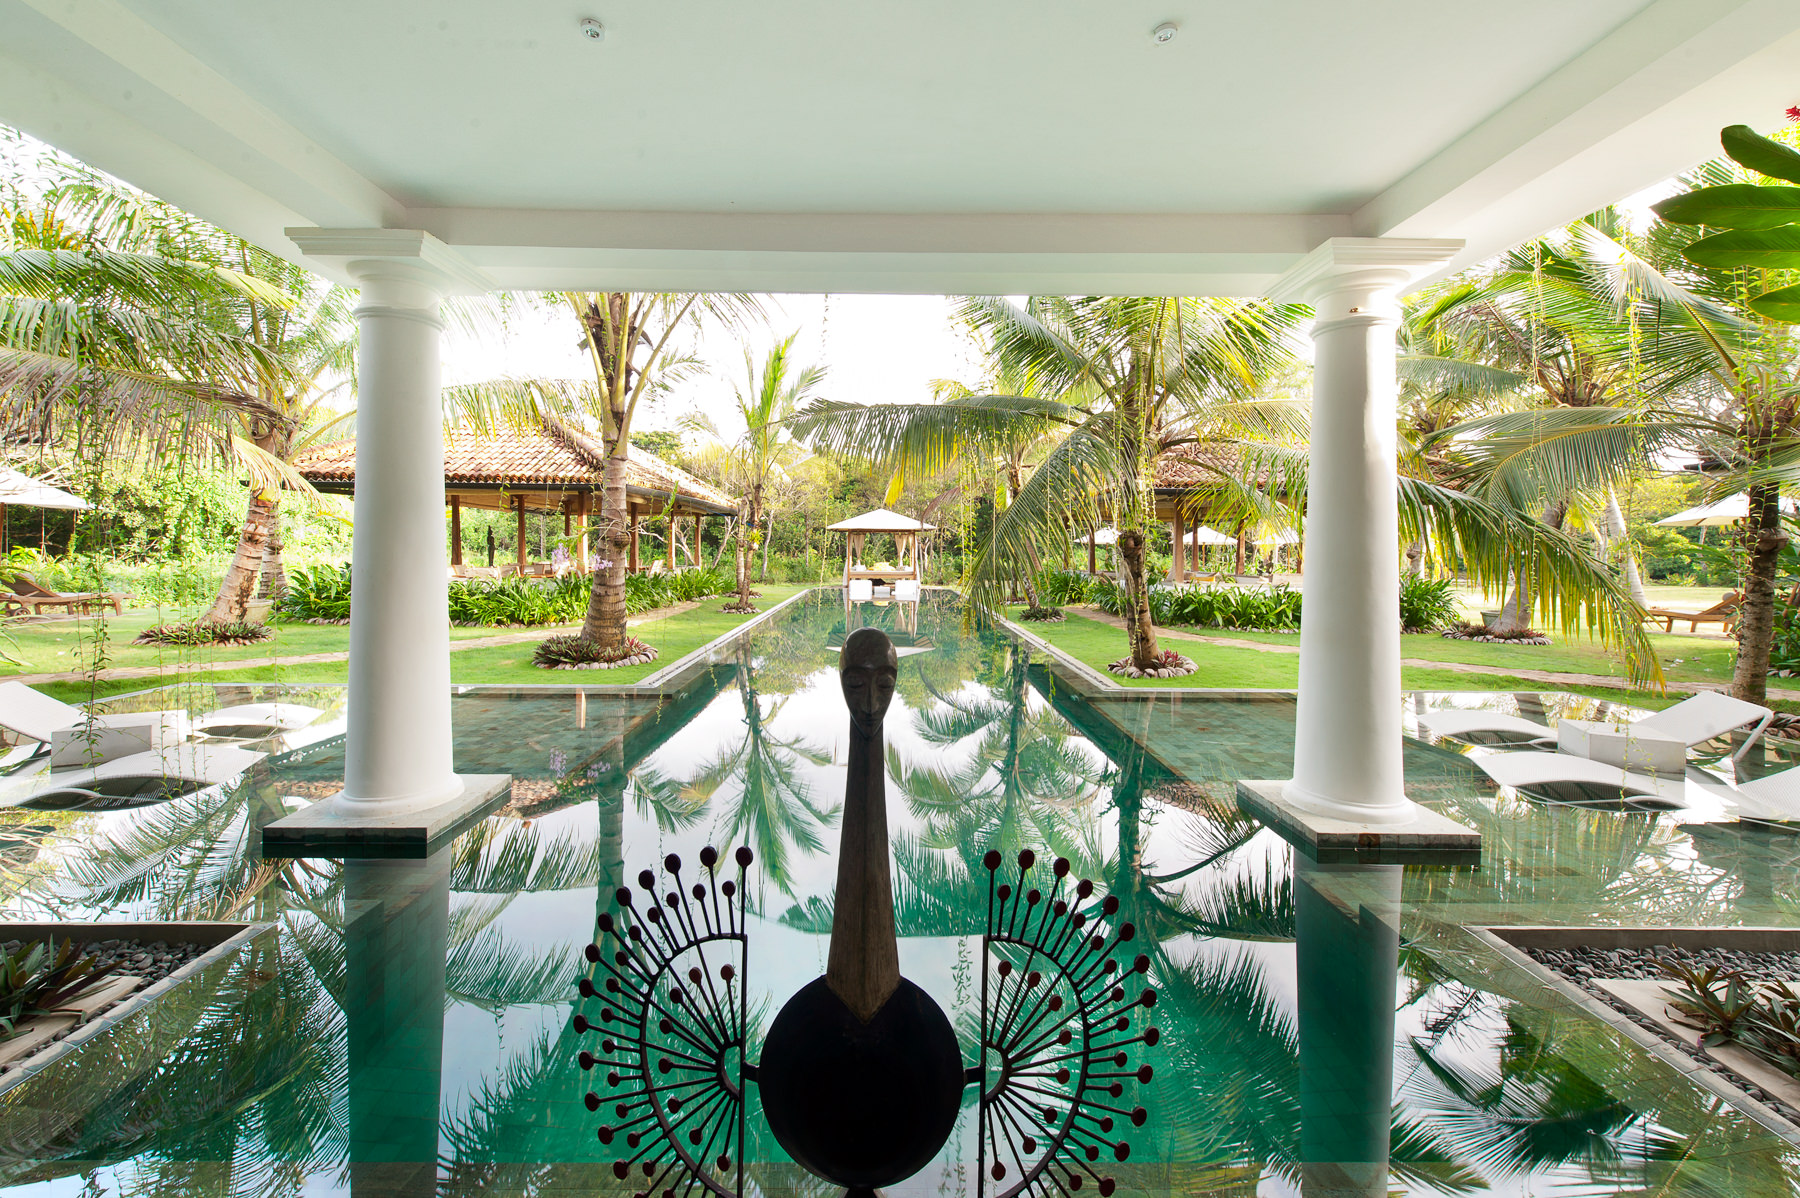 Nirbana-Yoga-Retreats-Sri-Lanka-The-Villa